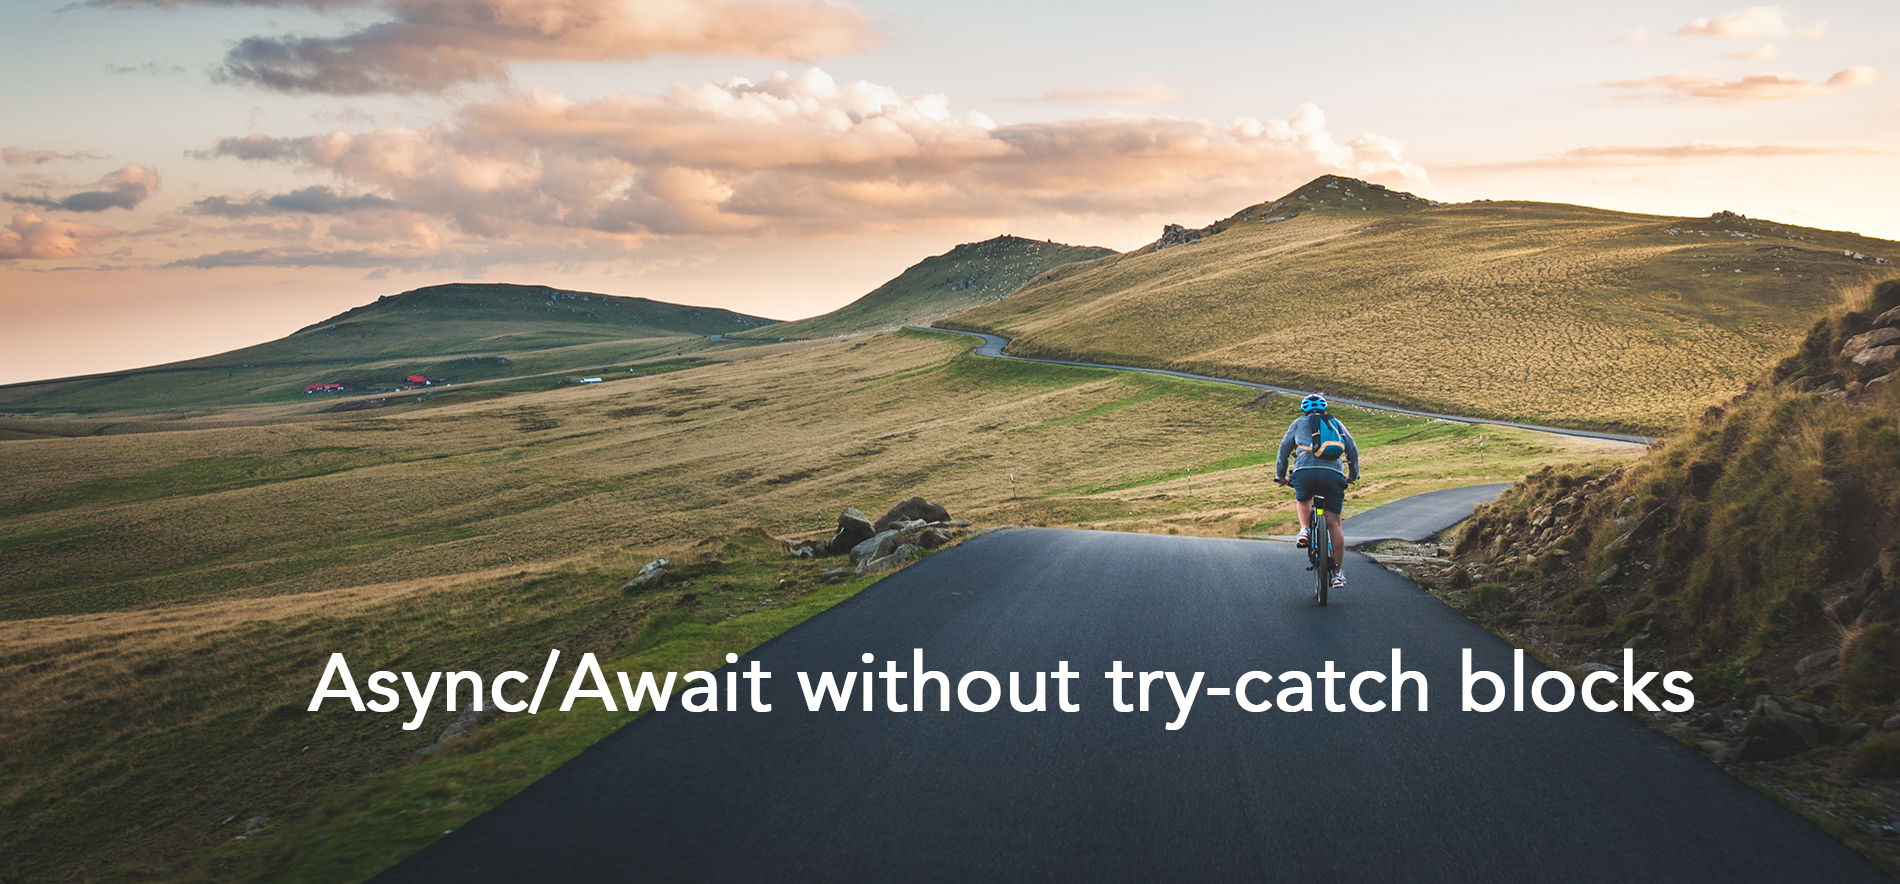 How to write async await without try-catch blocks in Javascript